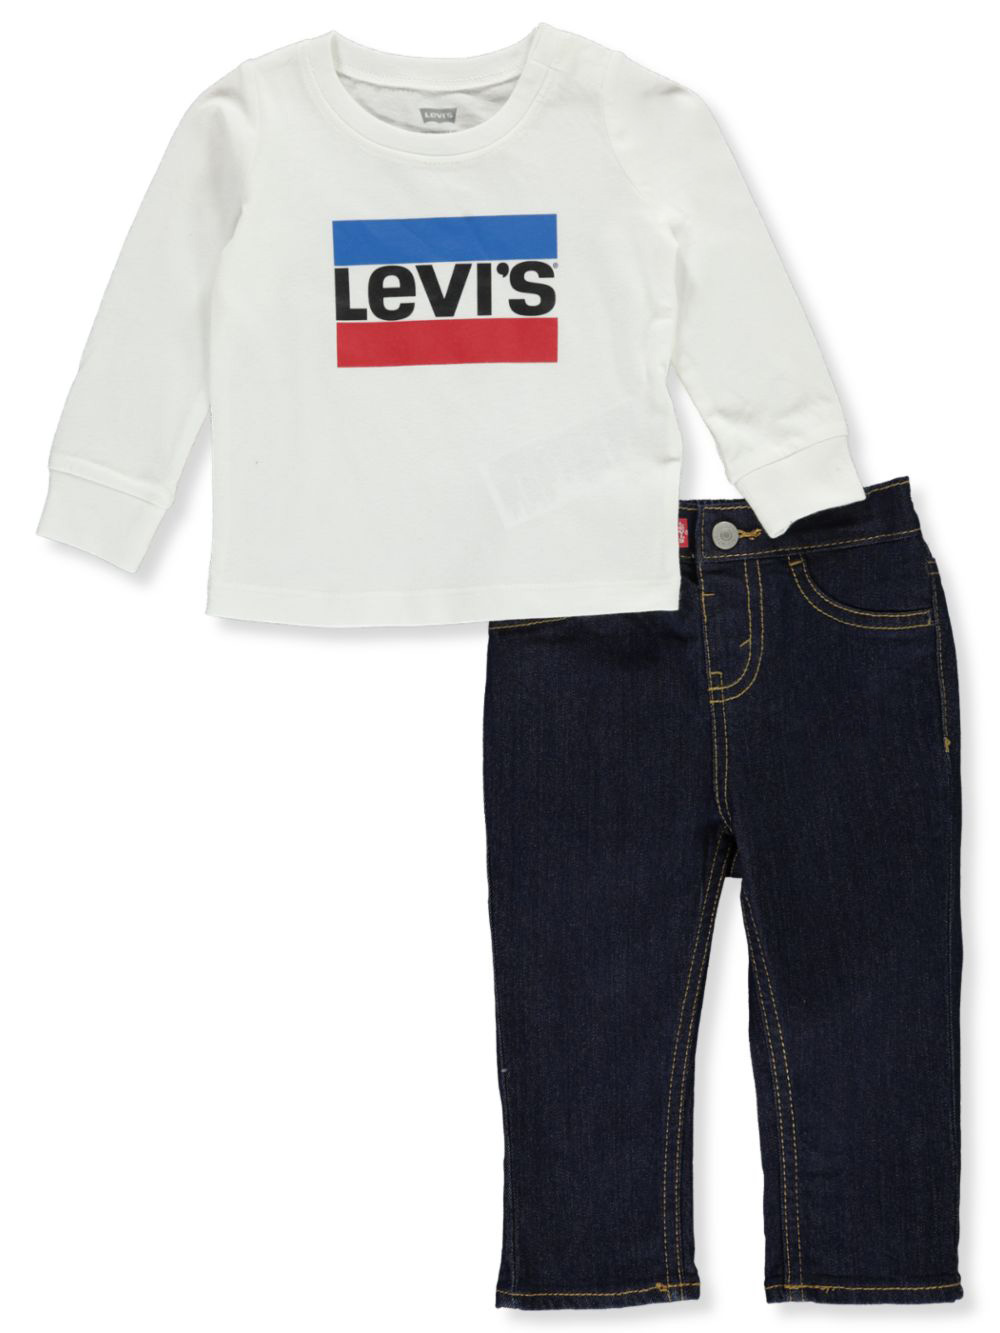 Boys White and Multicolor Pant Sets